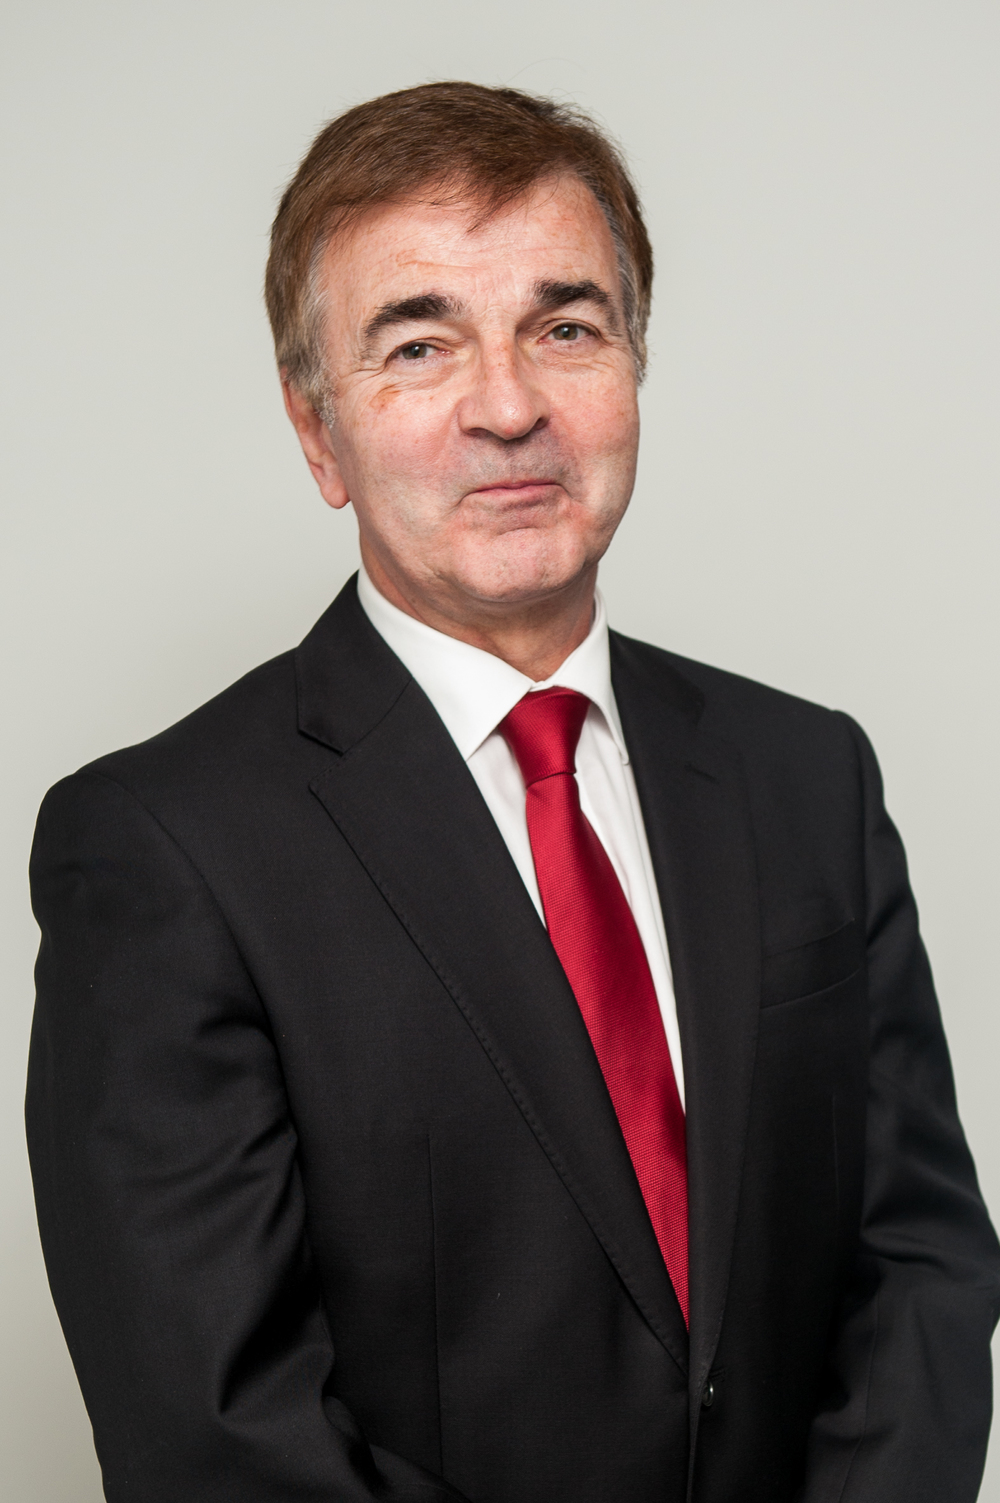 Solicitors profile photos in Essex